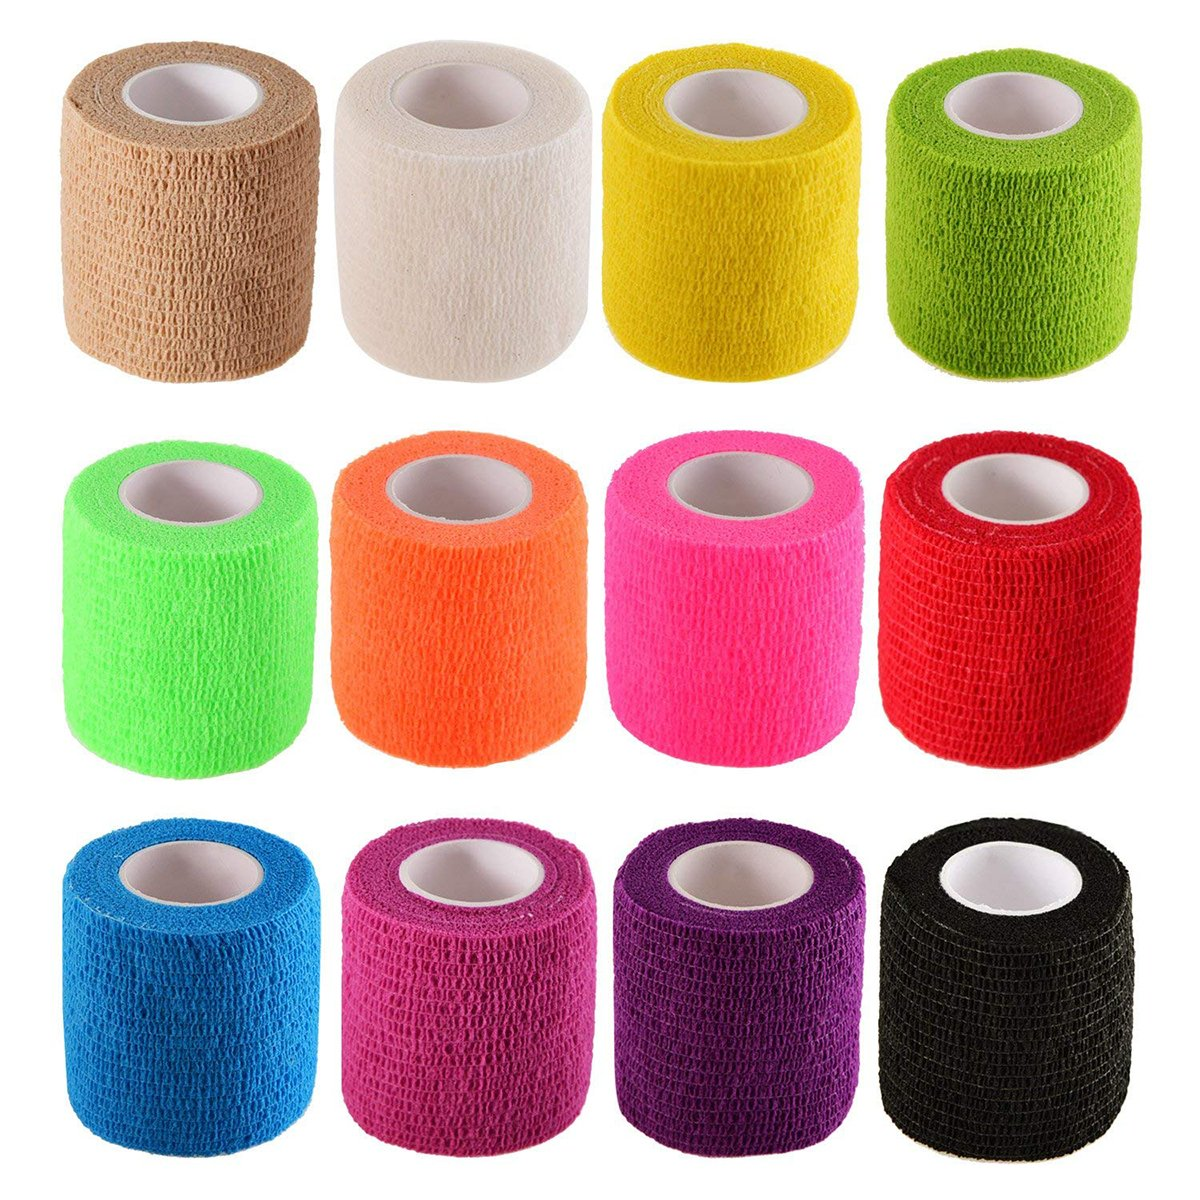 12 Rolls Self Adhesive Cohesive Bandage Wrap Stretch Self-Adherent Tape for Sports,Wrist, Ankle, First Aid,Camping,Travel etc (Assorted Colors,2 inches X 5 Yards)